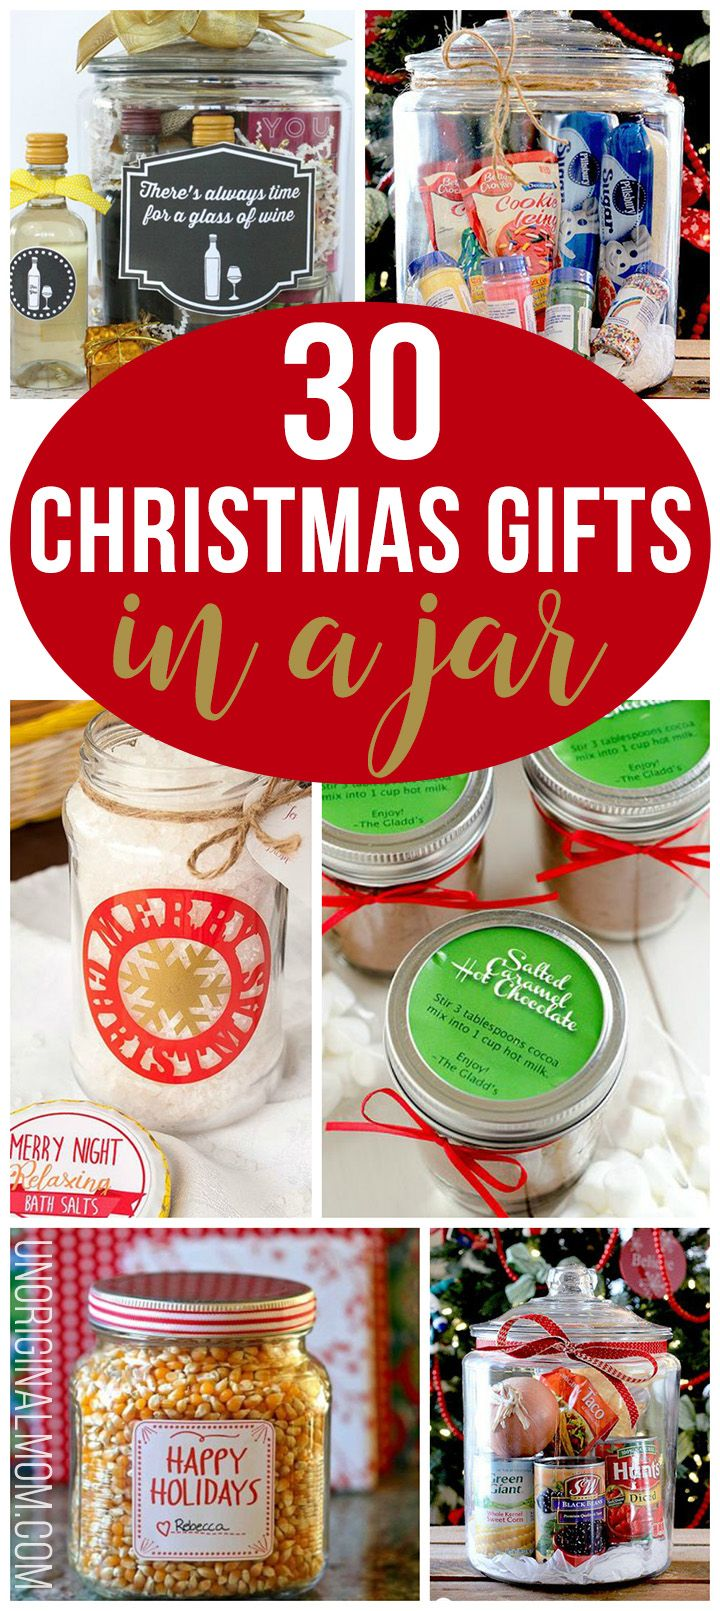 30 Christmas Gifts in a Jar | small gifts for friends | Pinterest ...